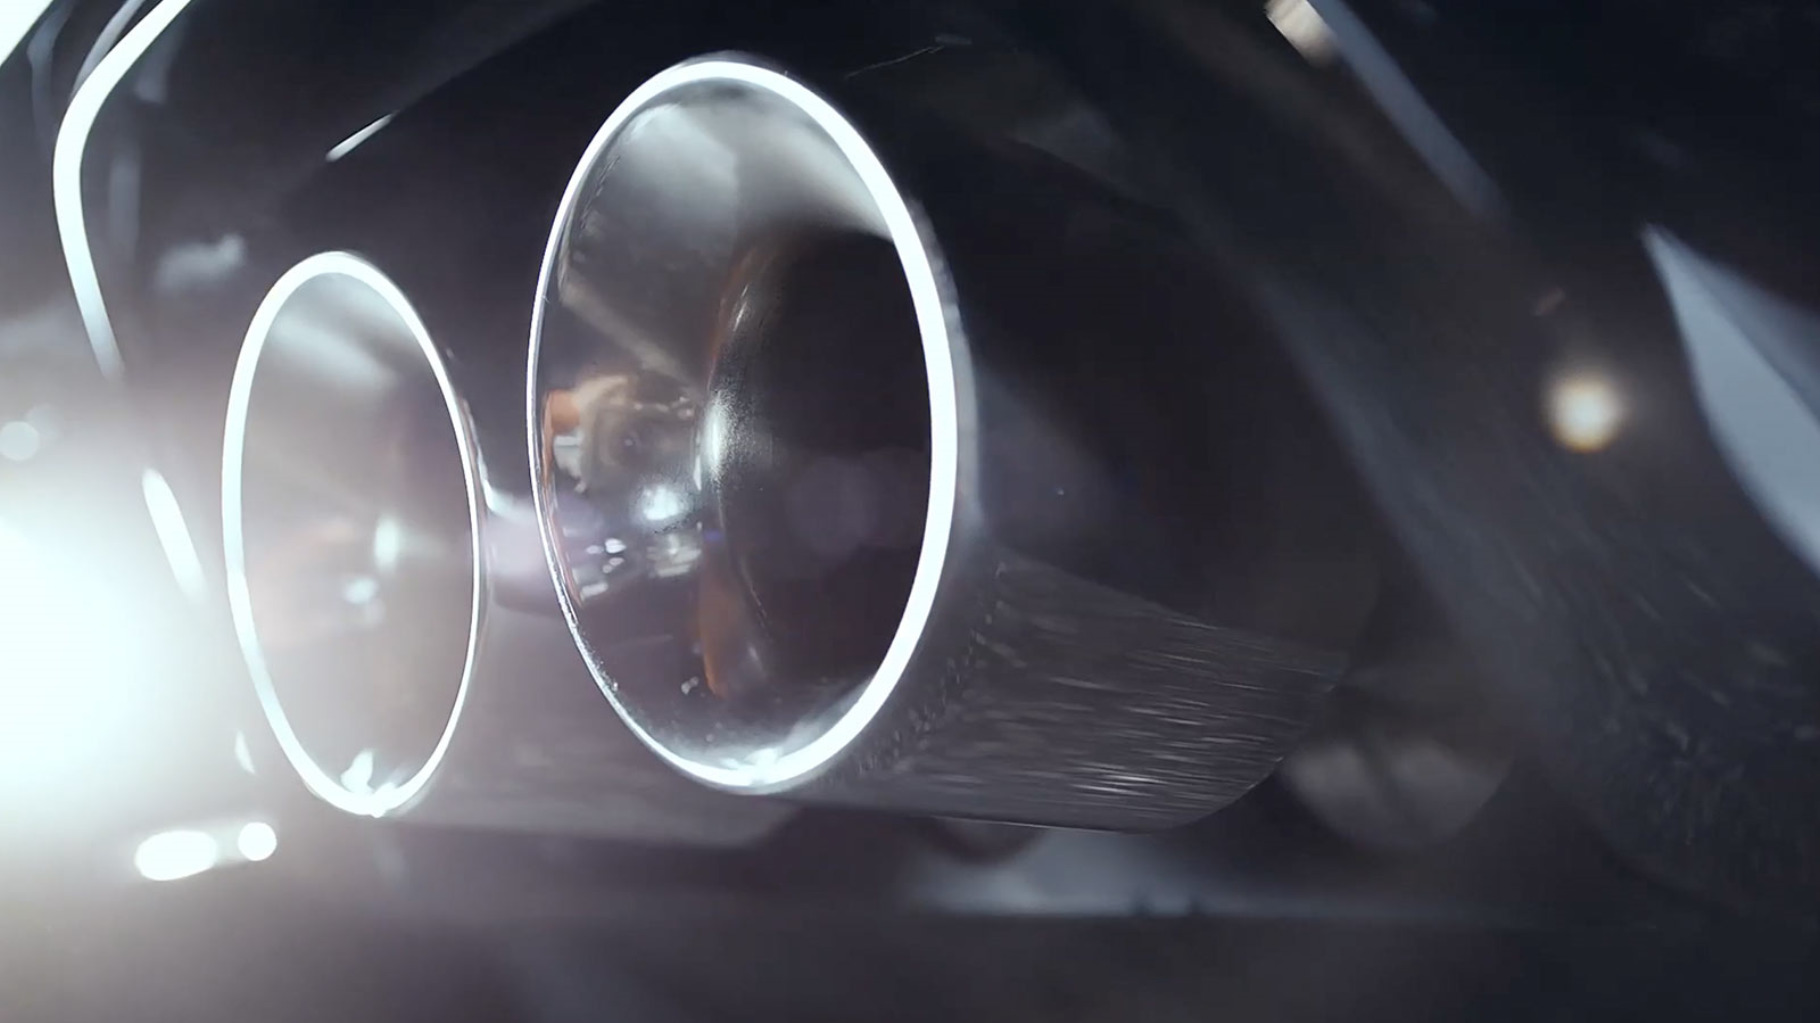 Close up of a Jaguar F-type dual Exhaust pipe.